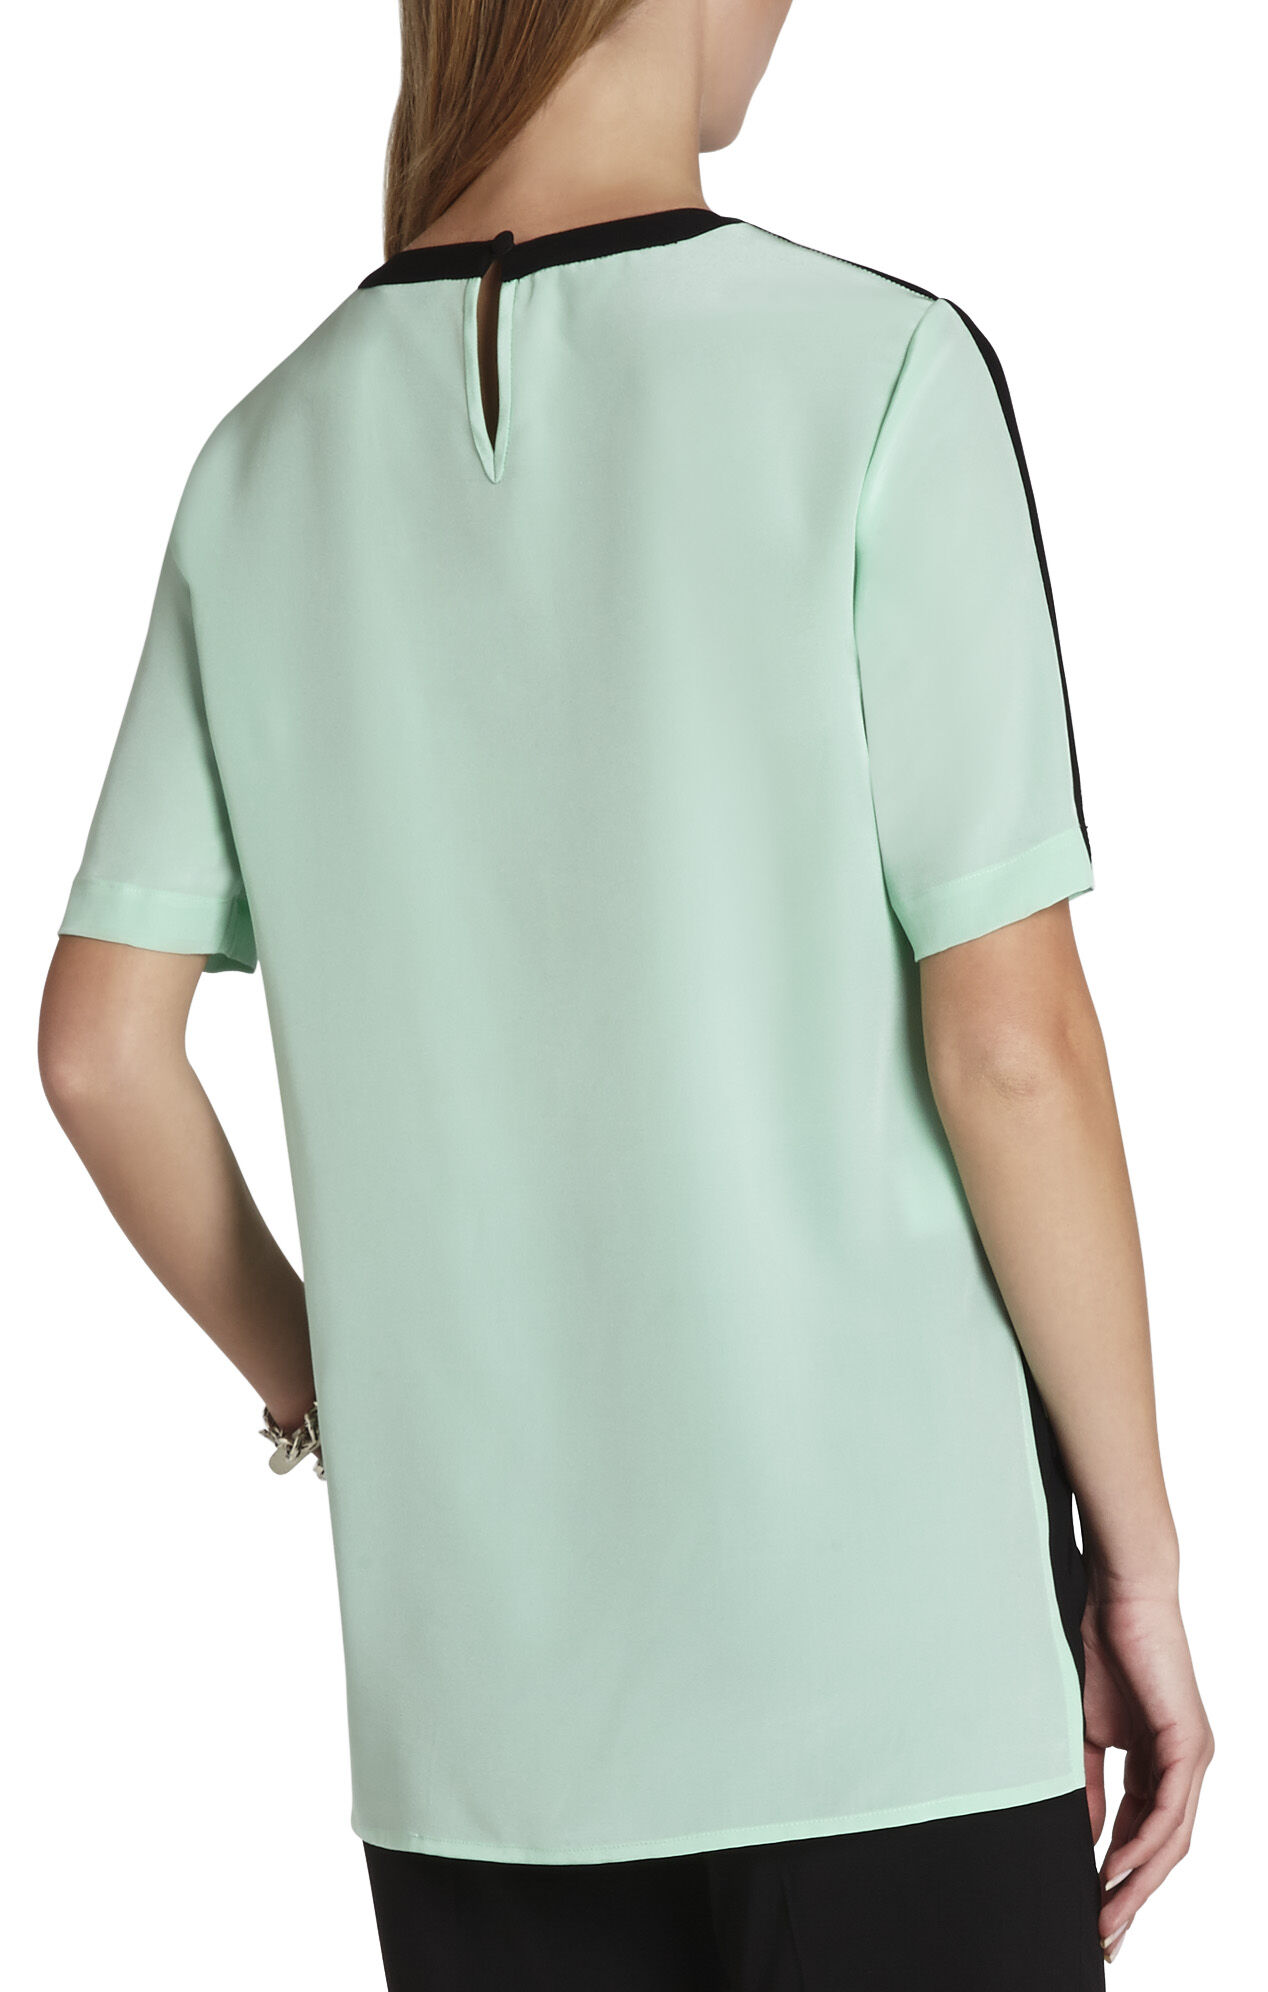 Bregie Short-Sleeve Shirt